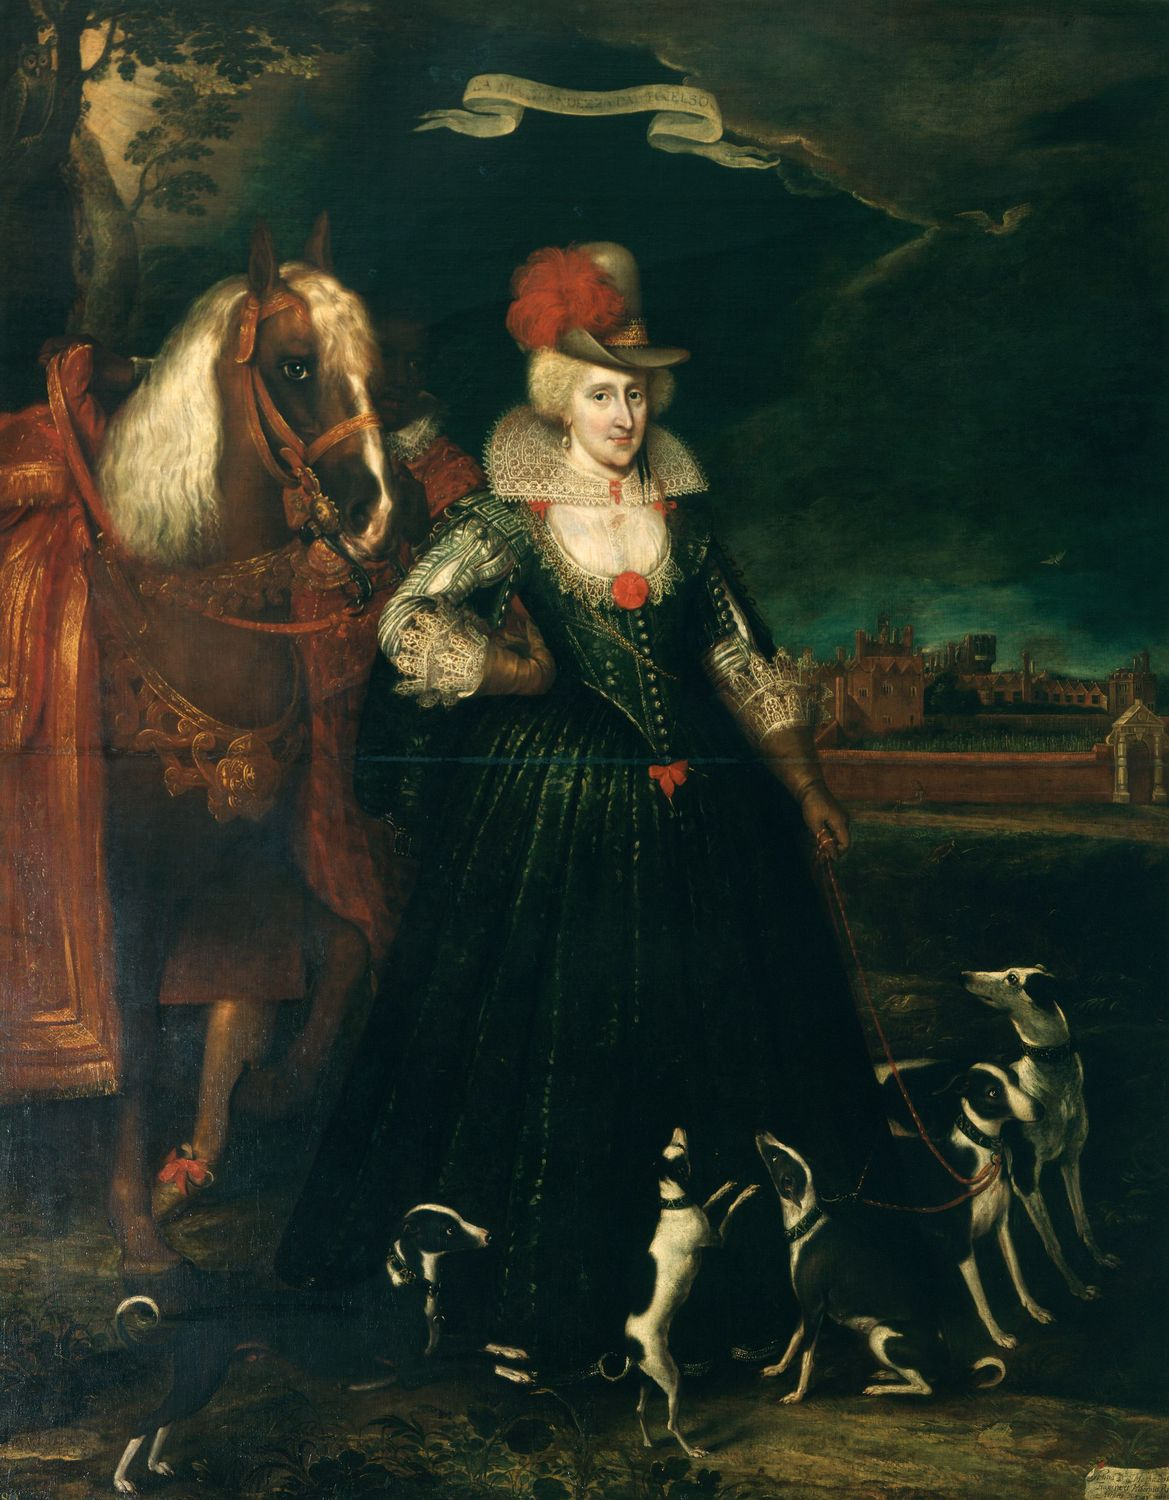 Portrait of Anne of Denmark by Paul van Somer. Image courtesy of the Royal Collection (UK).